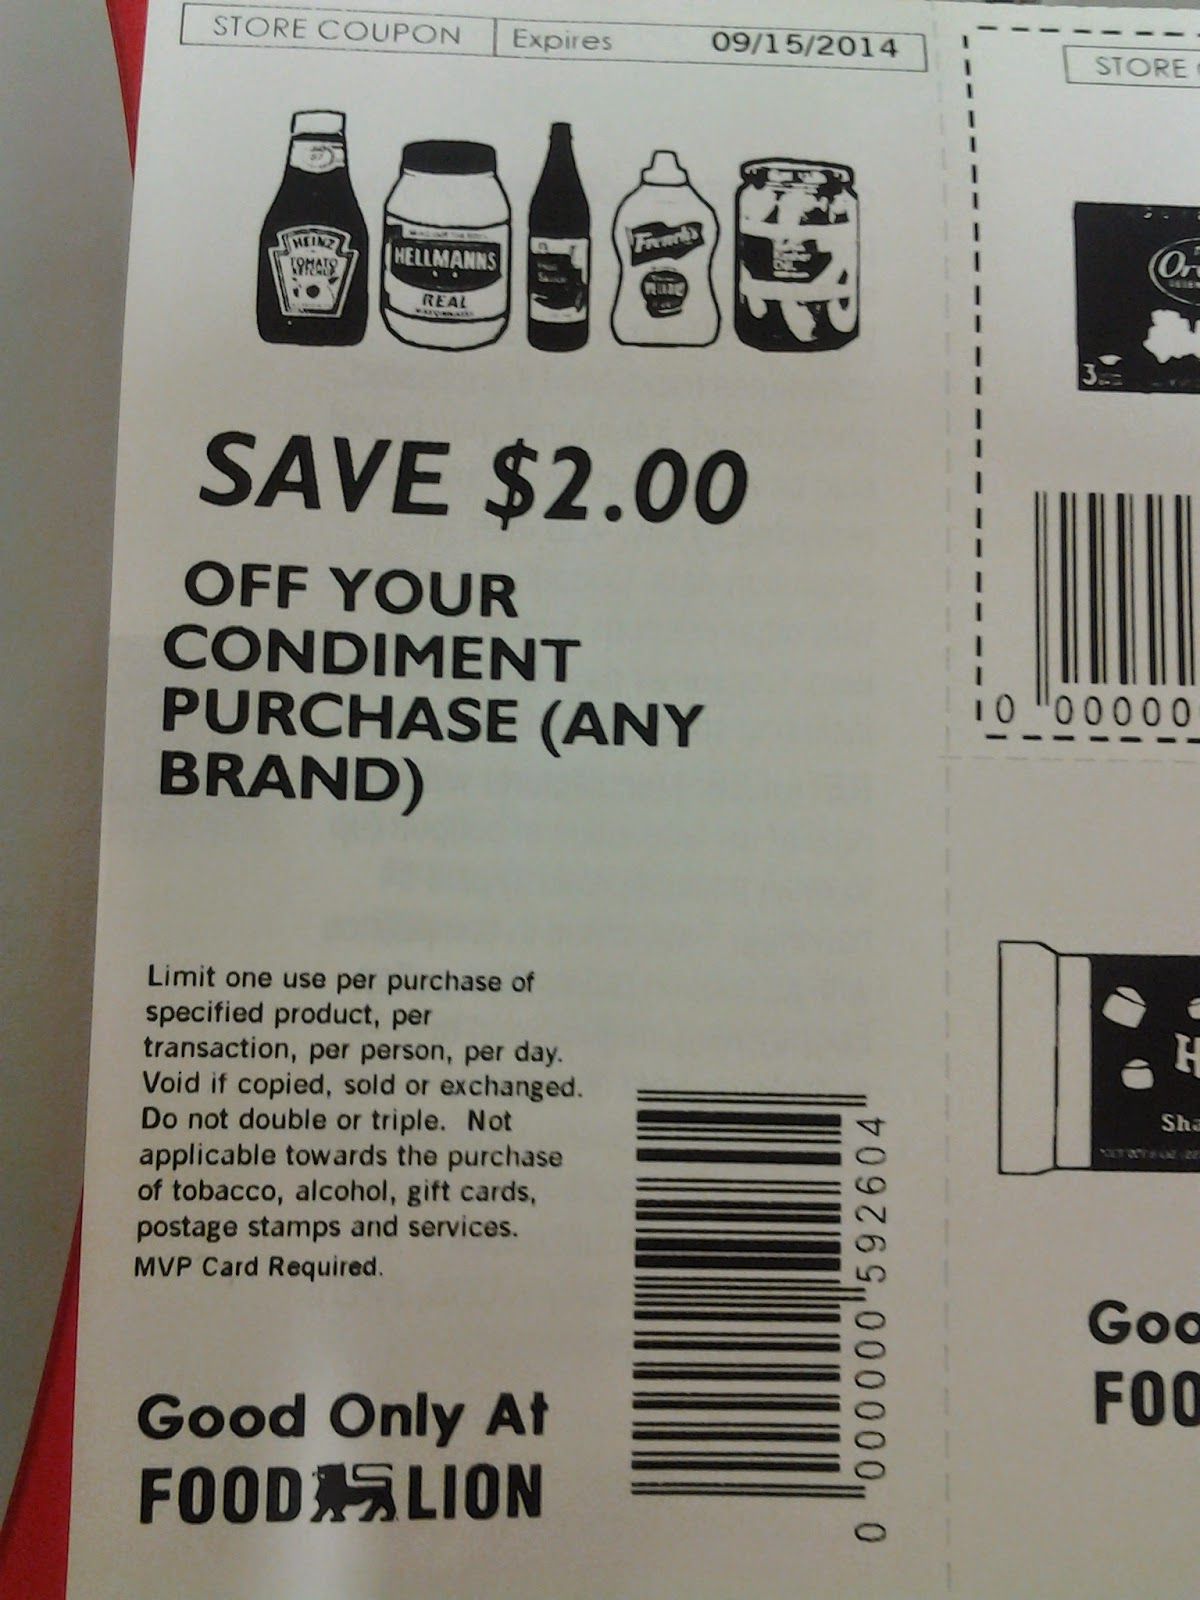 Food Lion store coupon